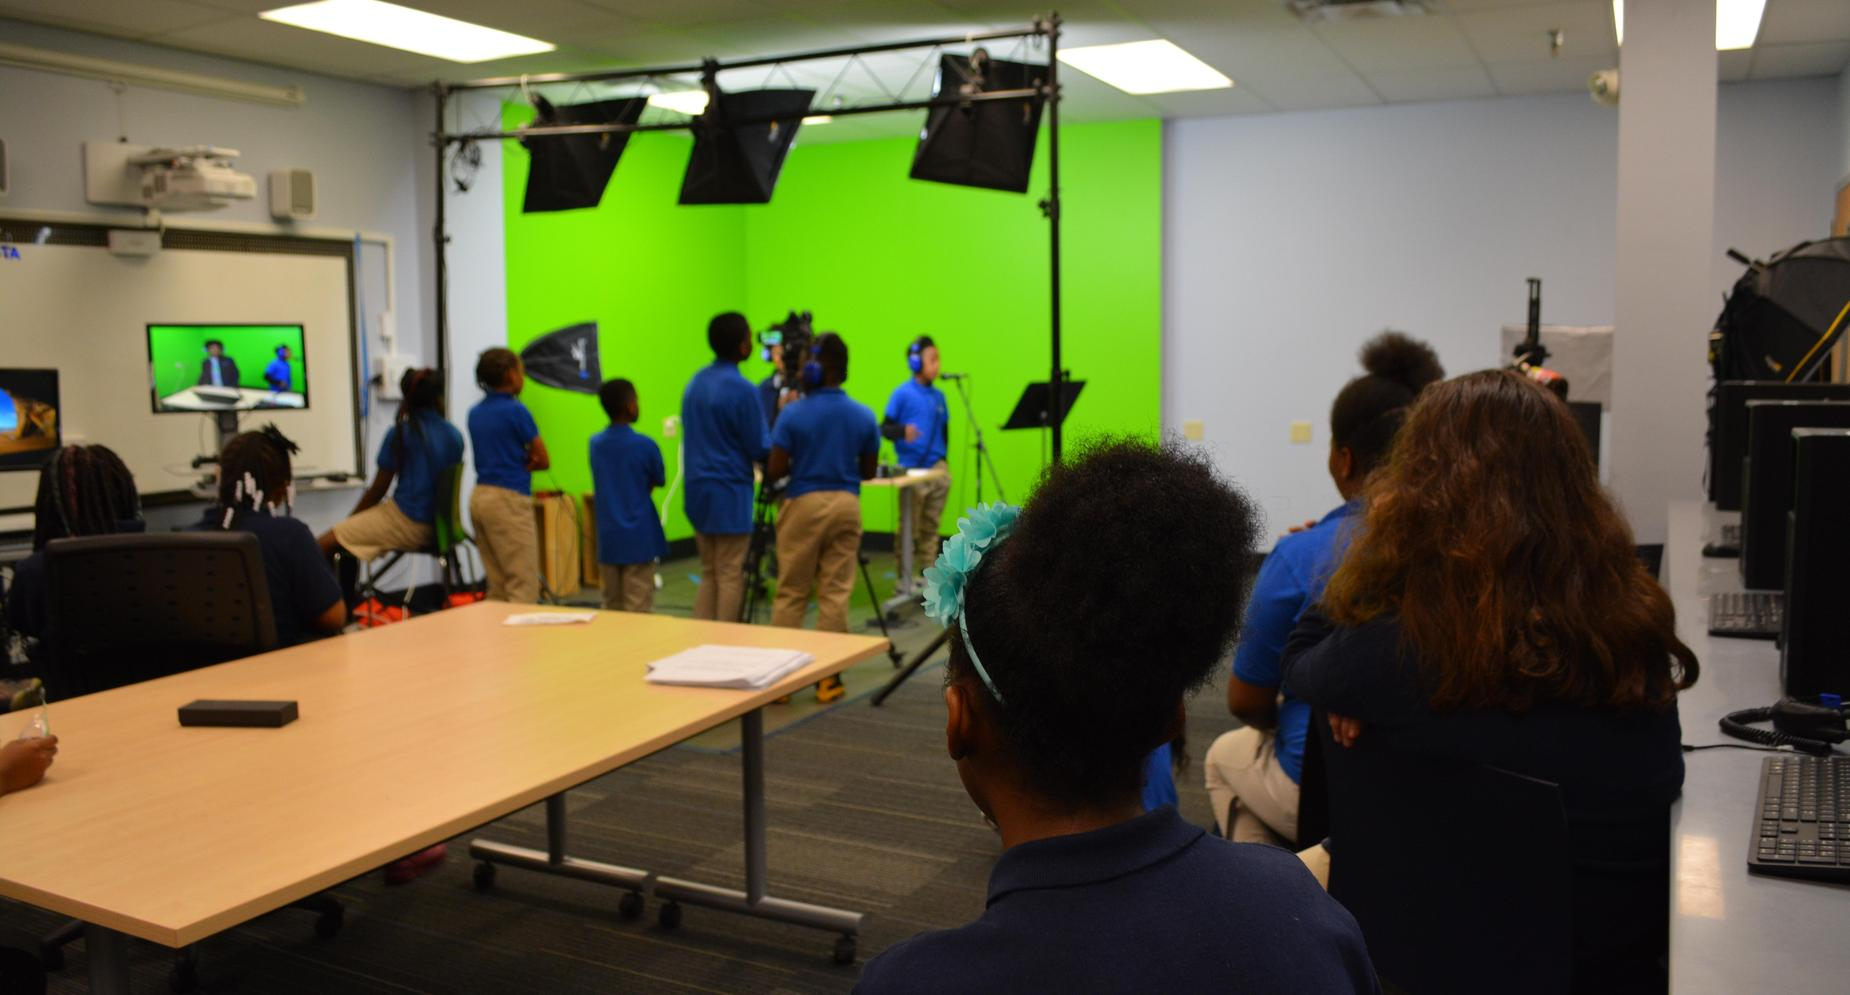 Green Screen Studio work